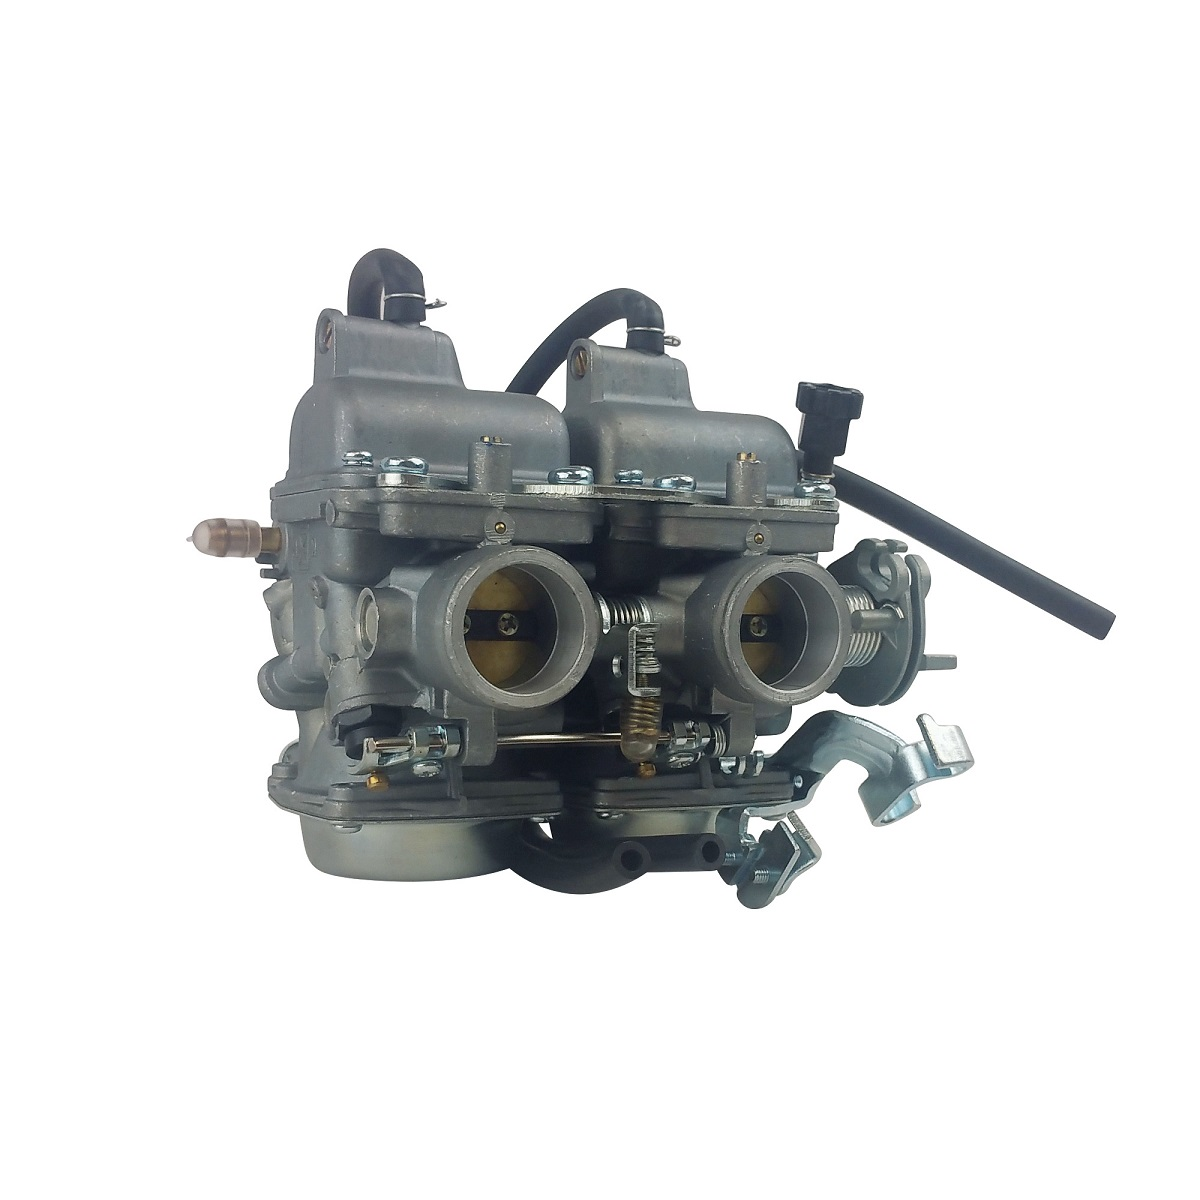 PD26JS 26MM 250CC Carburetor for Motorcycle ATVs Quad Go Kart Buggy Carb